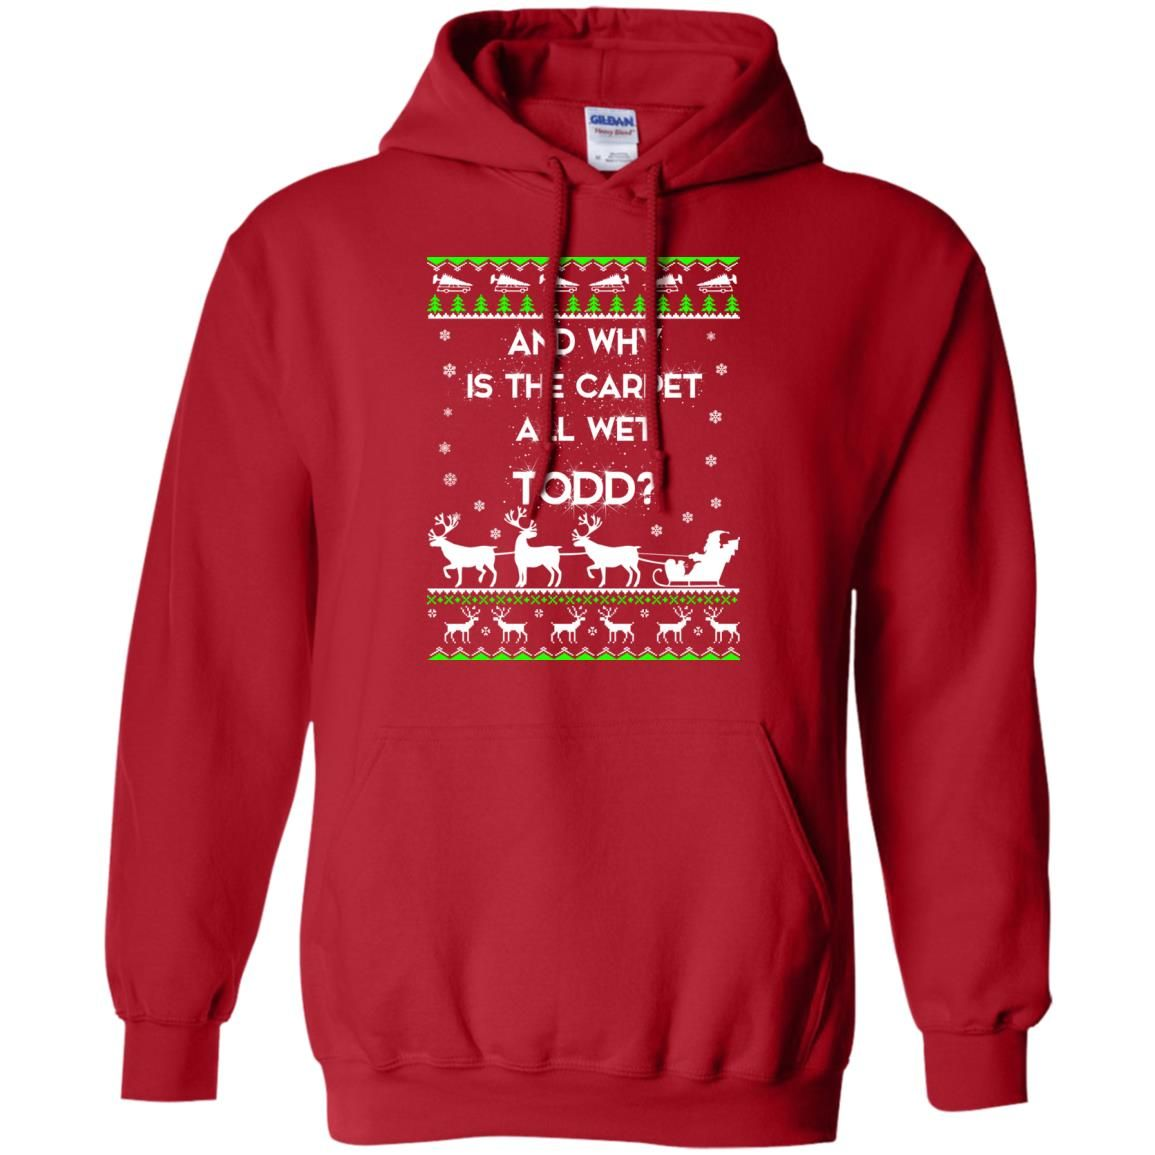 image 1606 - Christmas Vacation: And why is carpet all wet TODD ulgy sweater, hoodie